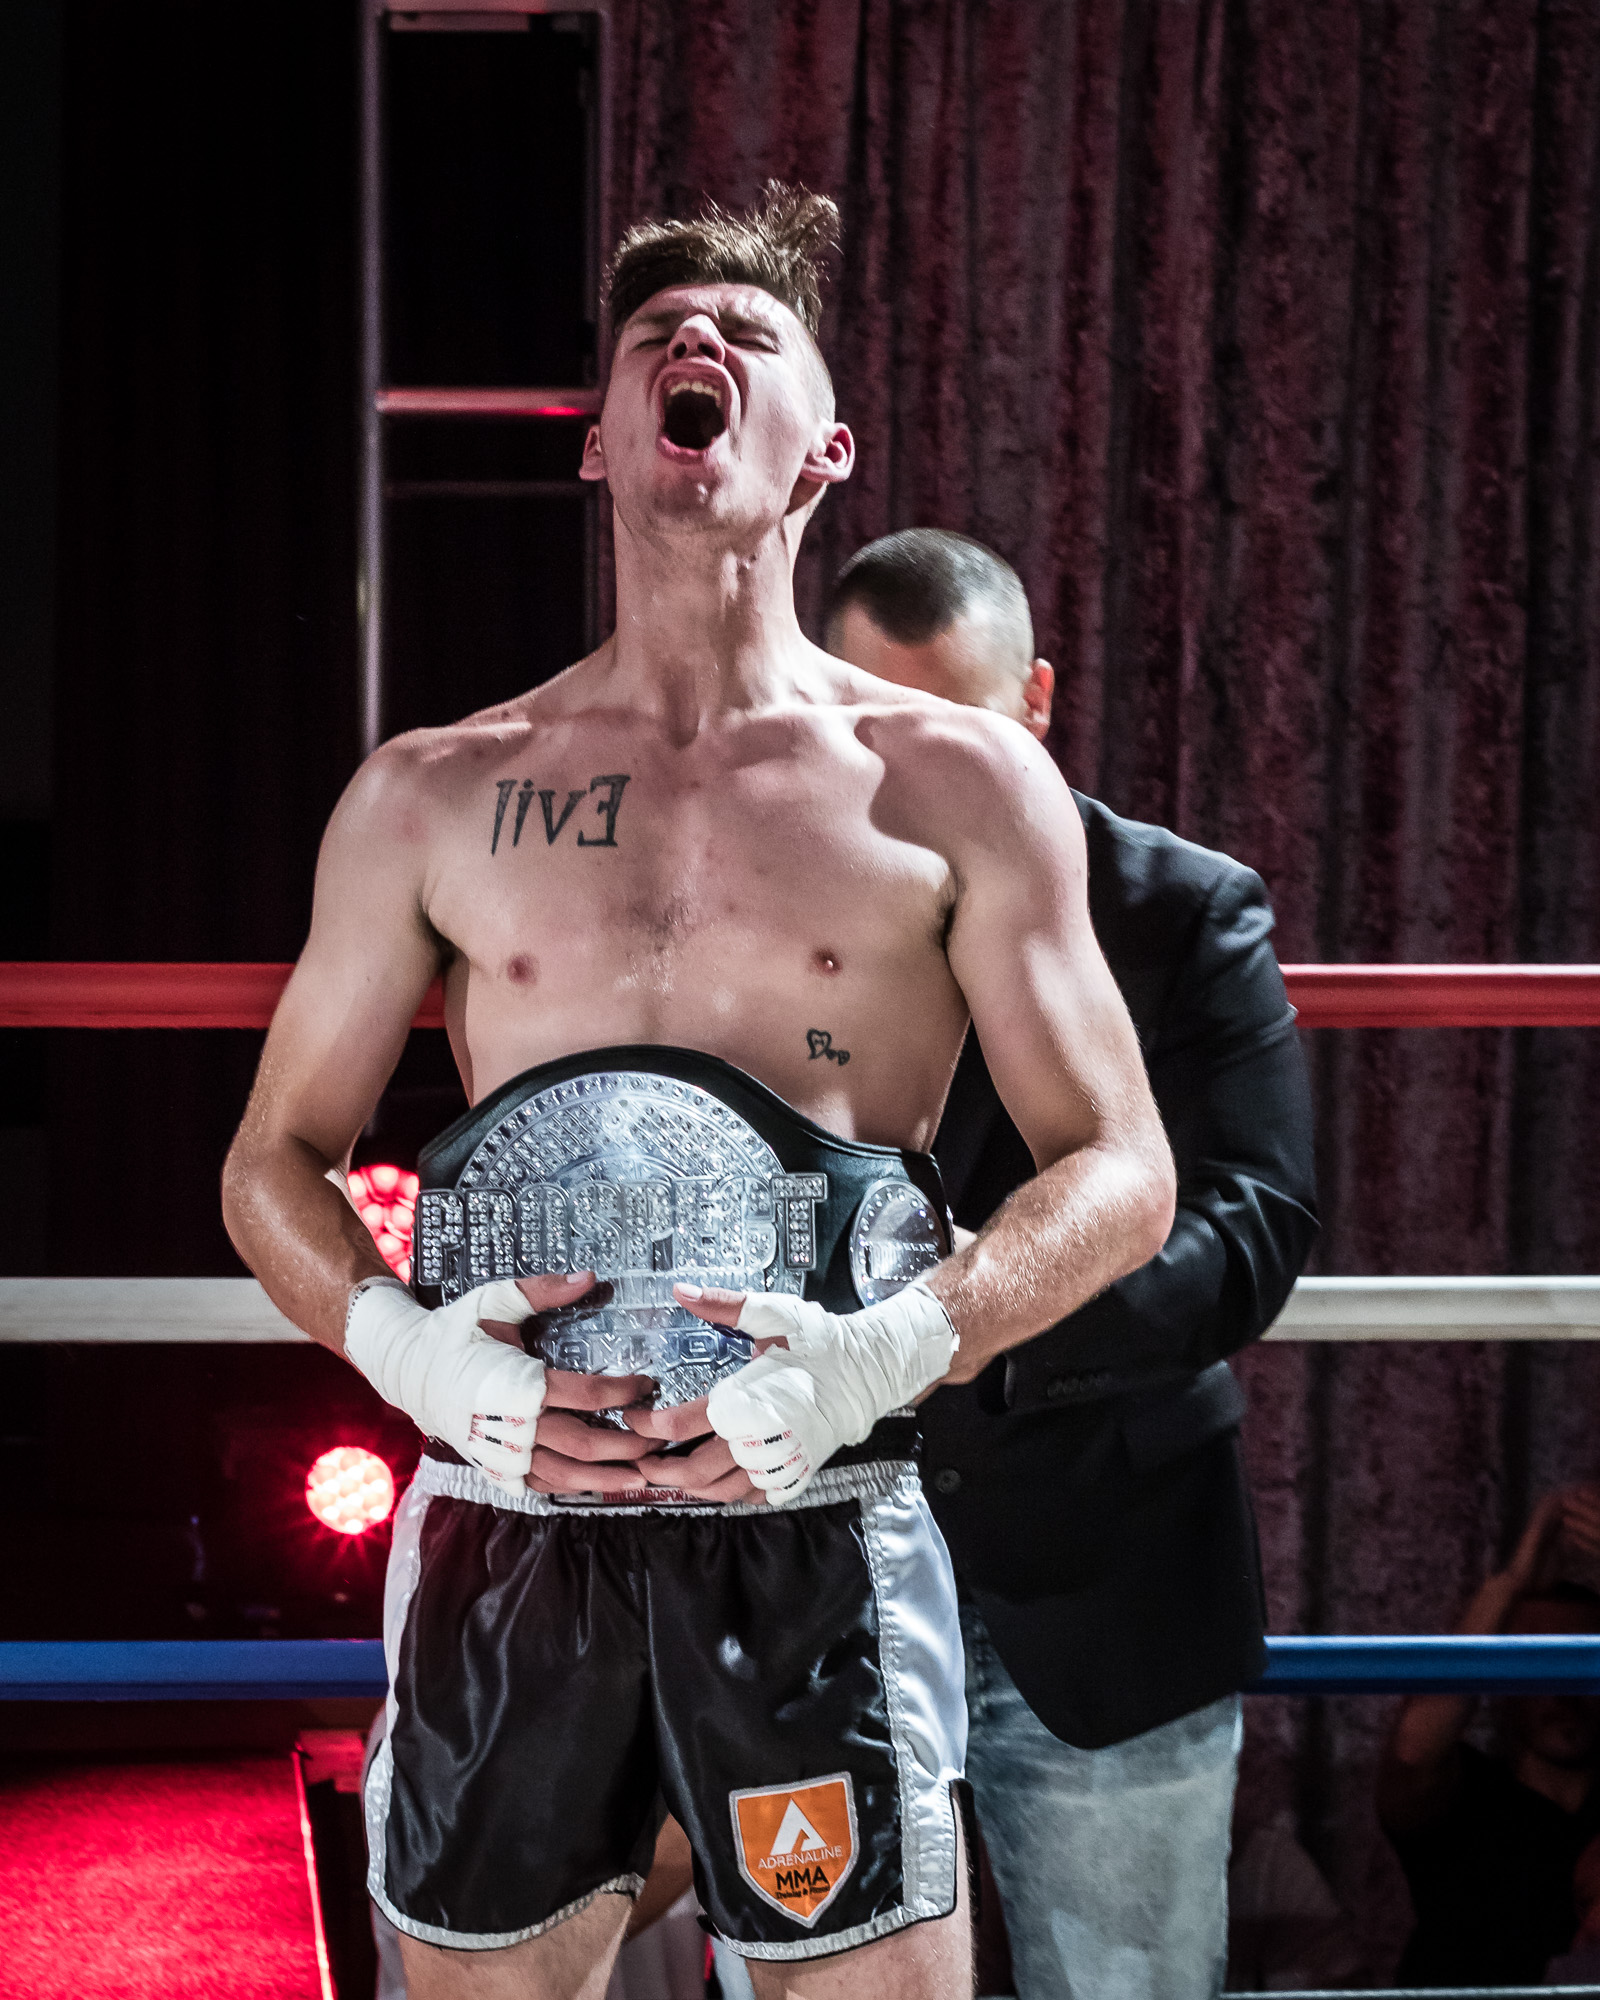 Gord Cunningham winning the light heavyweight title.